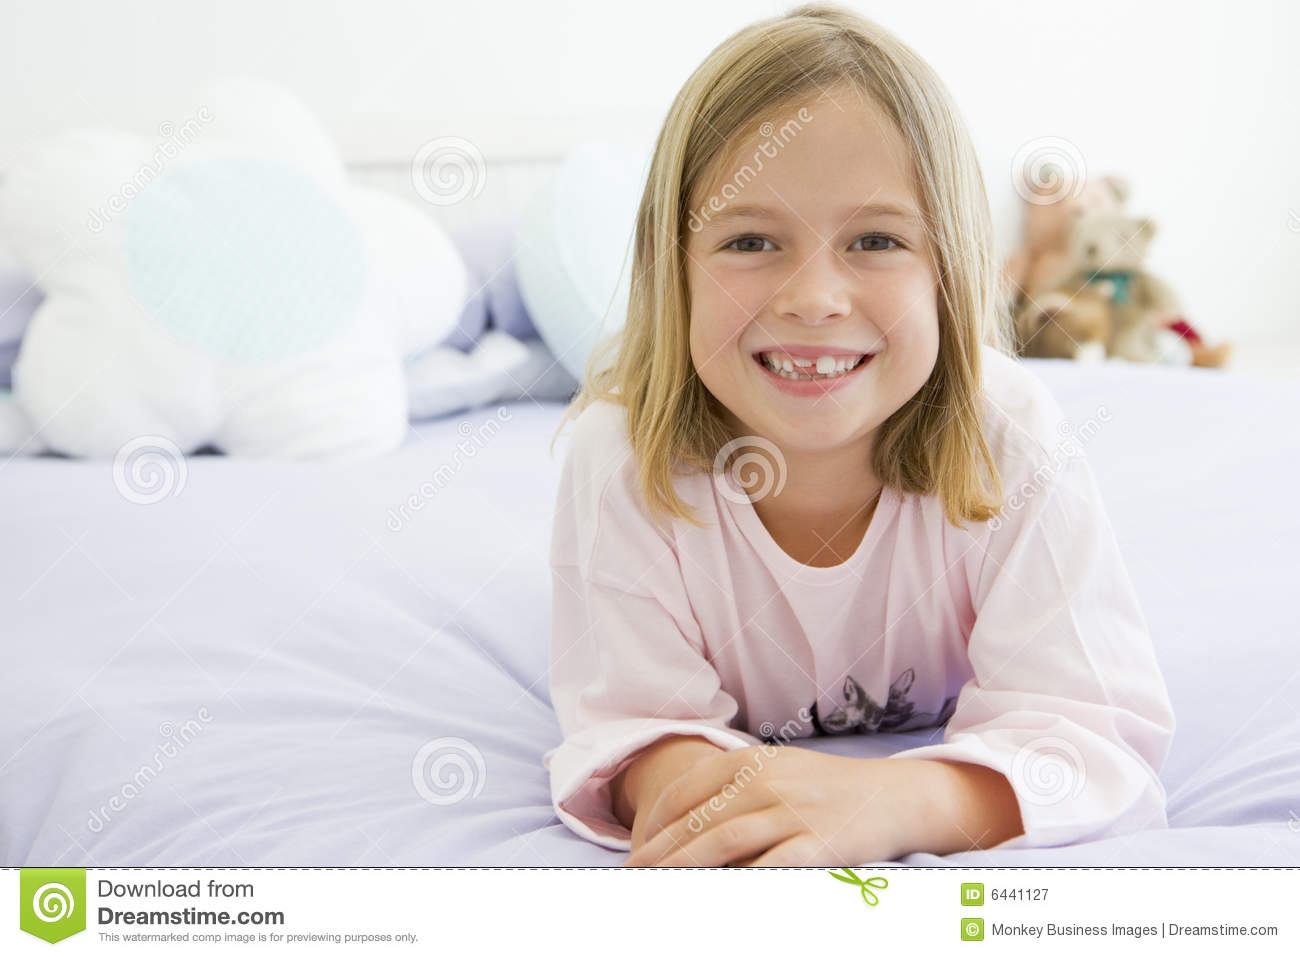 image of young girl in pajamas